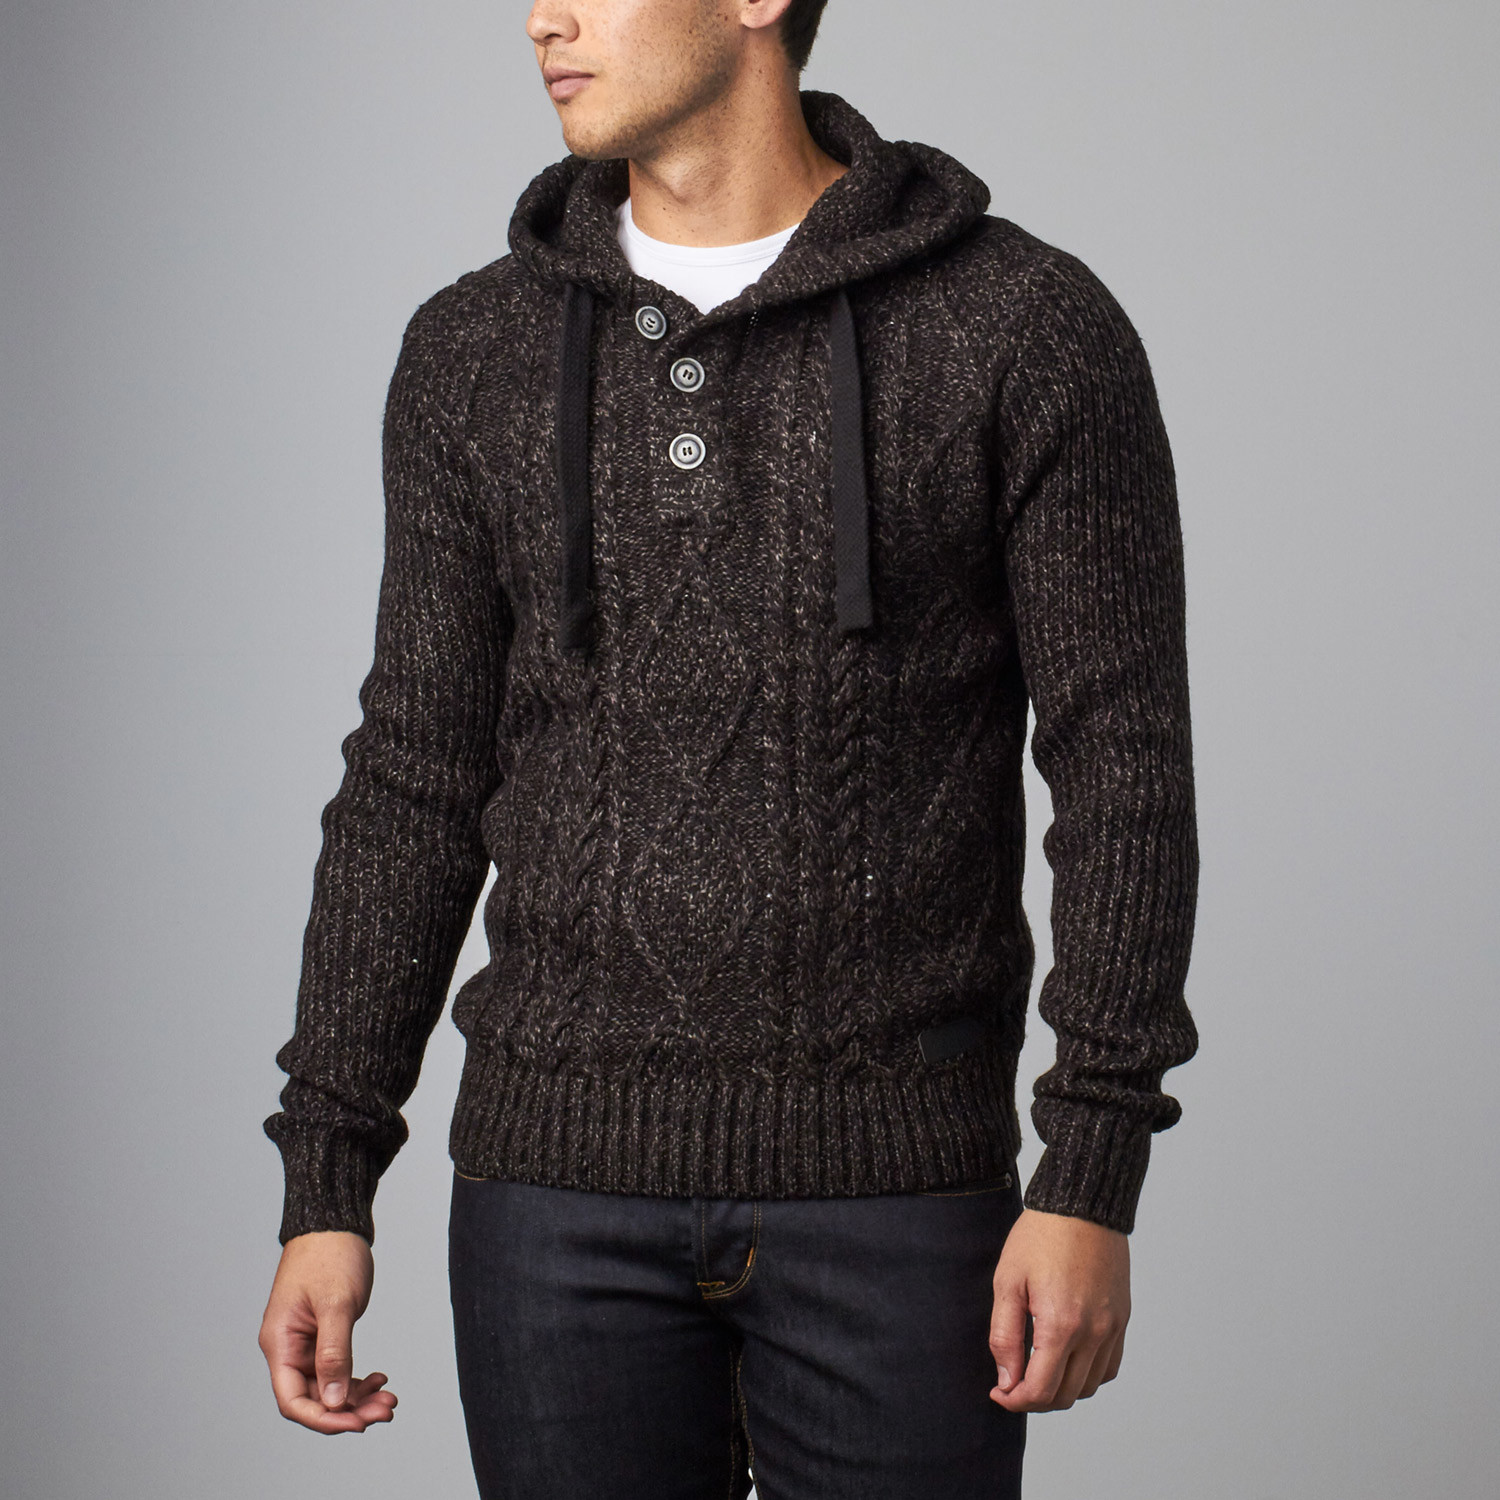 Projek Raw // Cable Knit Sweater Hoodie // Black (S) - Projek Raw ...